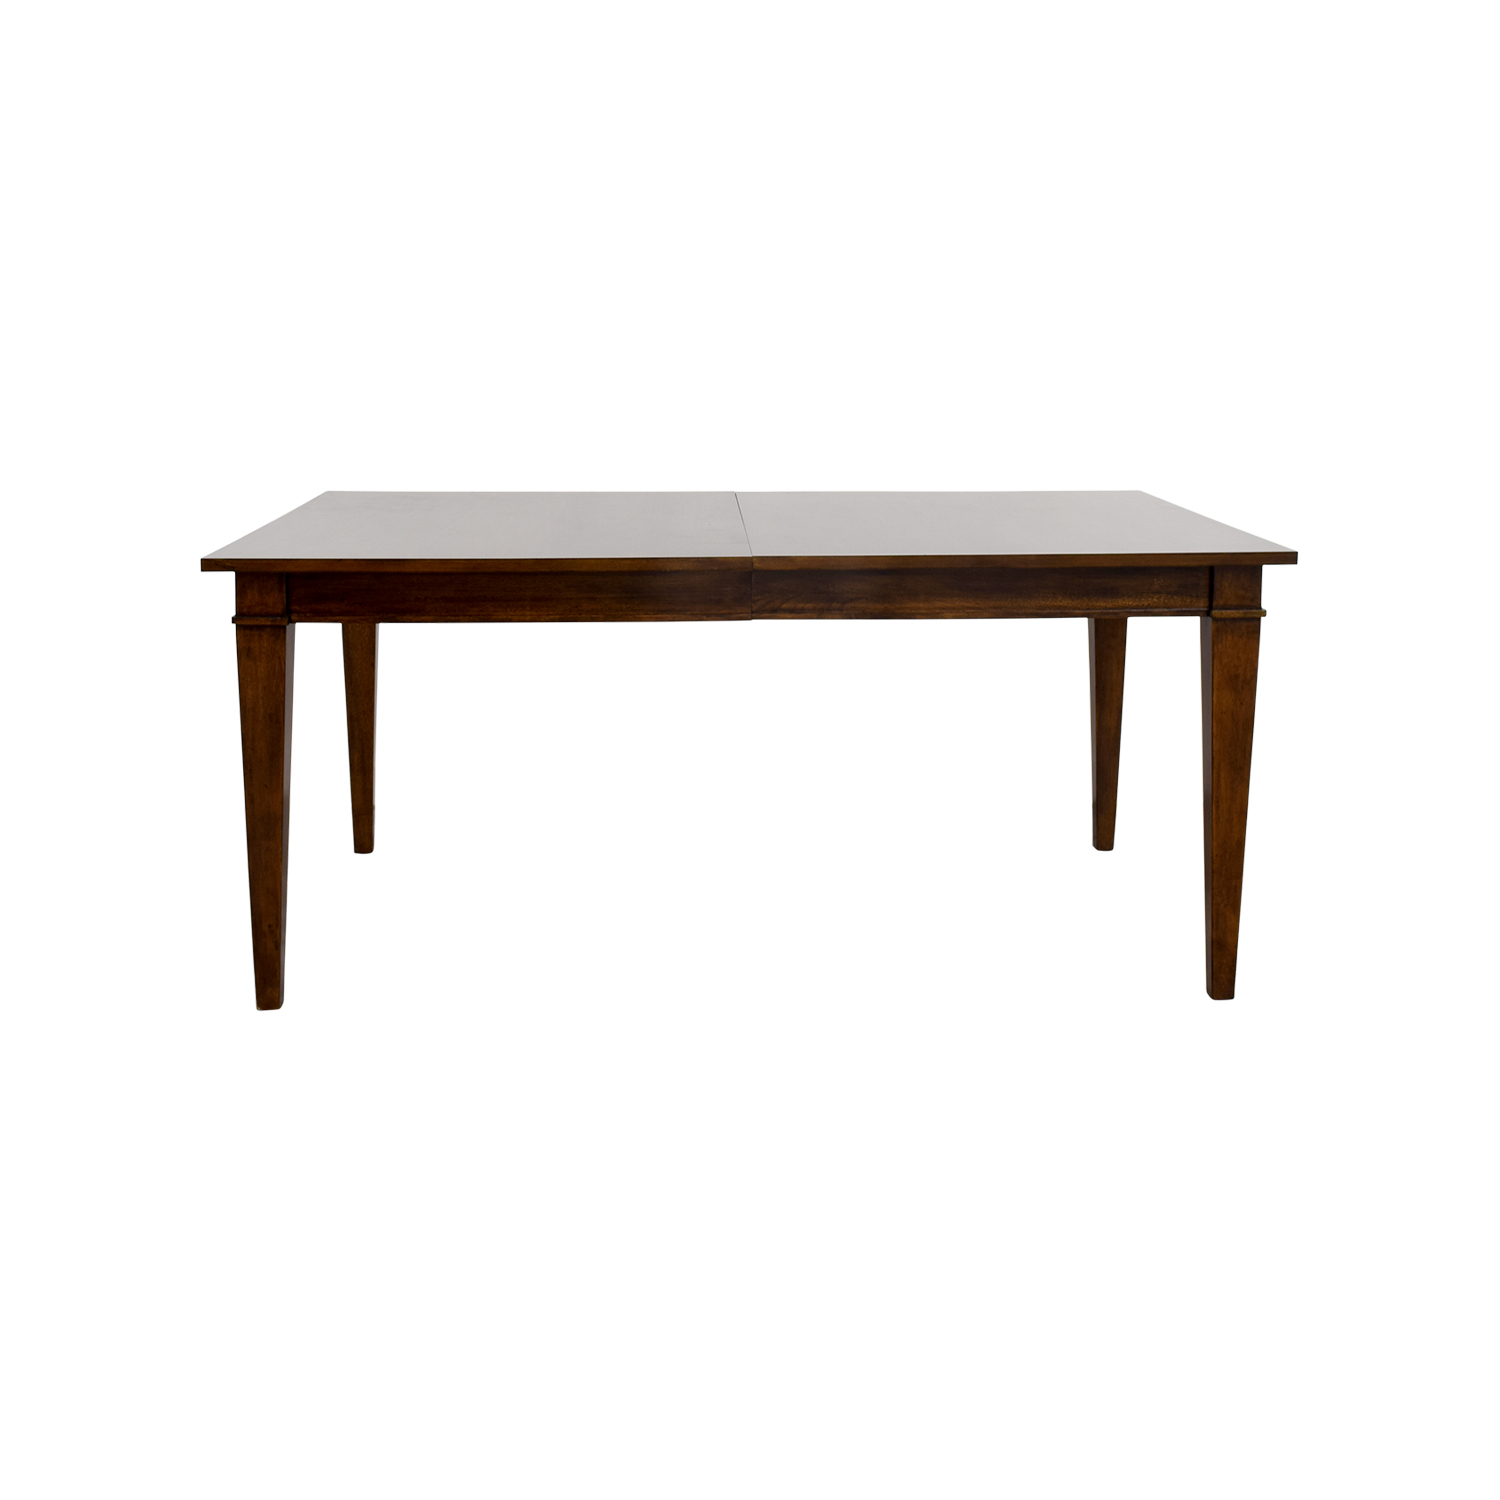 Ethan Allen Marble Coffee Table: Tables Coupon Code